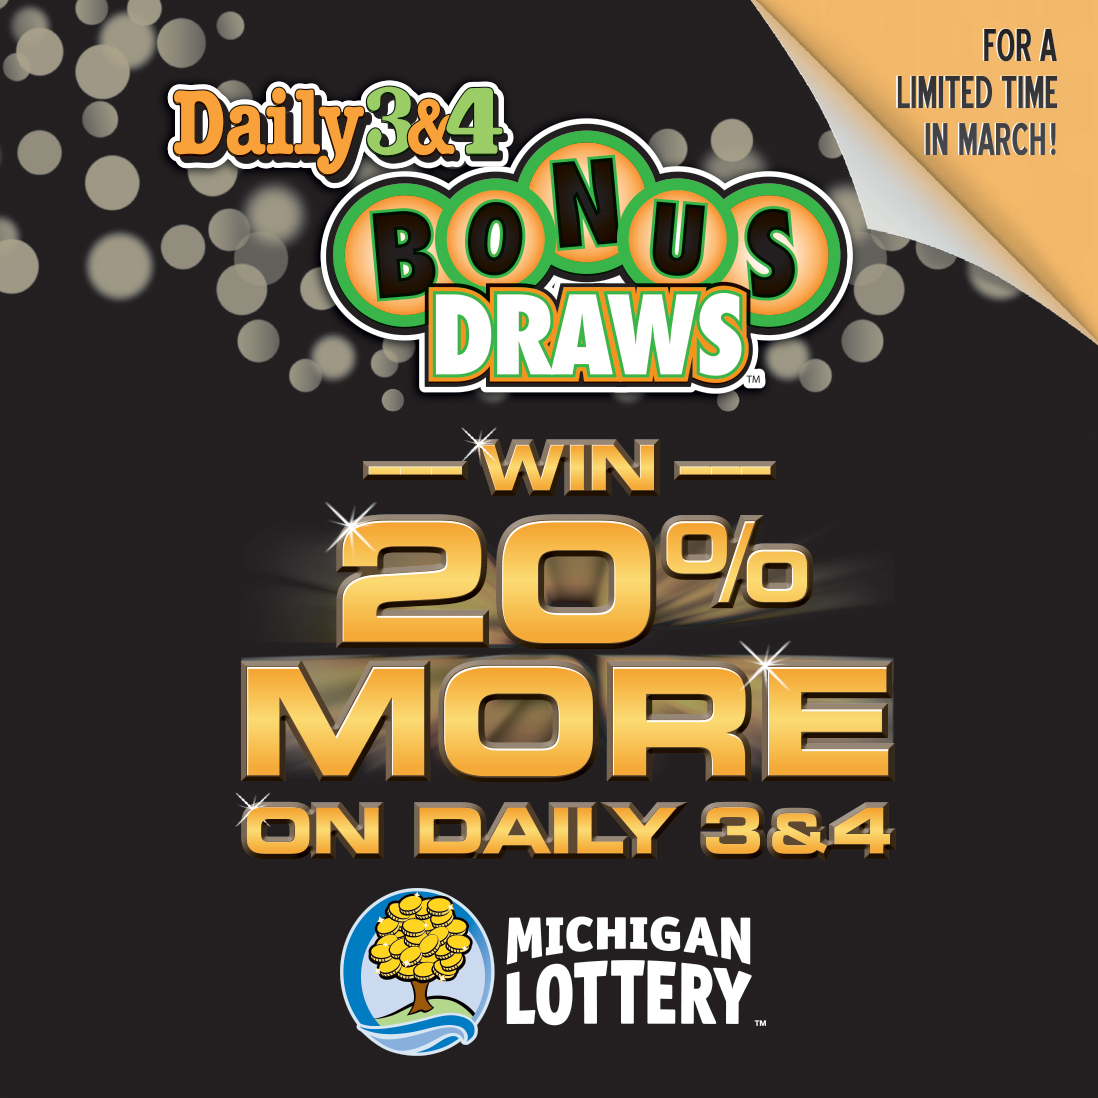 Bonus Draws Give Daily 3 and Daily 4 Players Chances to Win